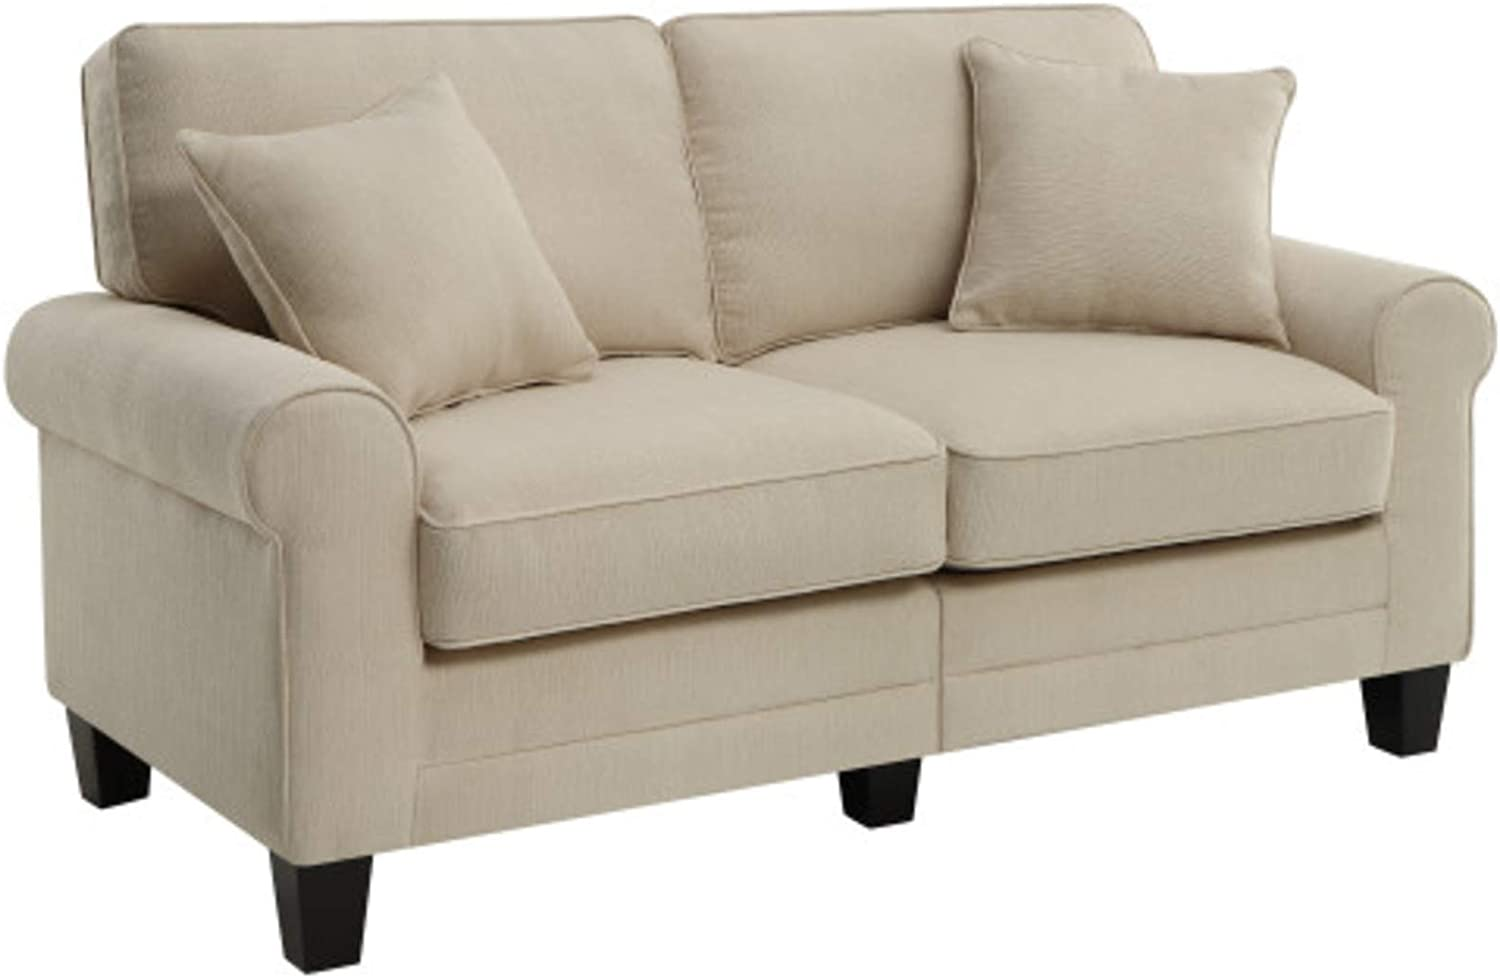 "Serta Copenhagen Love Seats, 61"" Loveseat, Buckwheat"